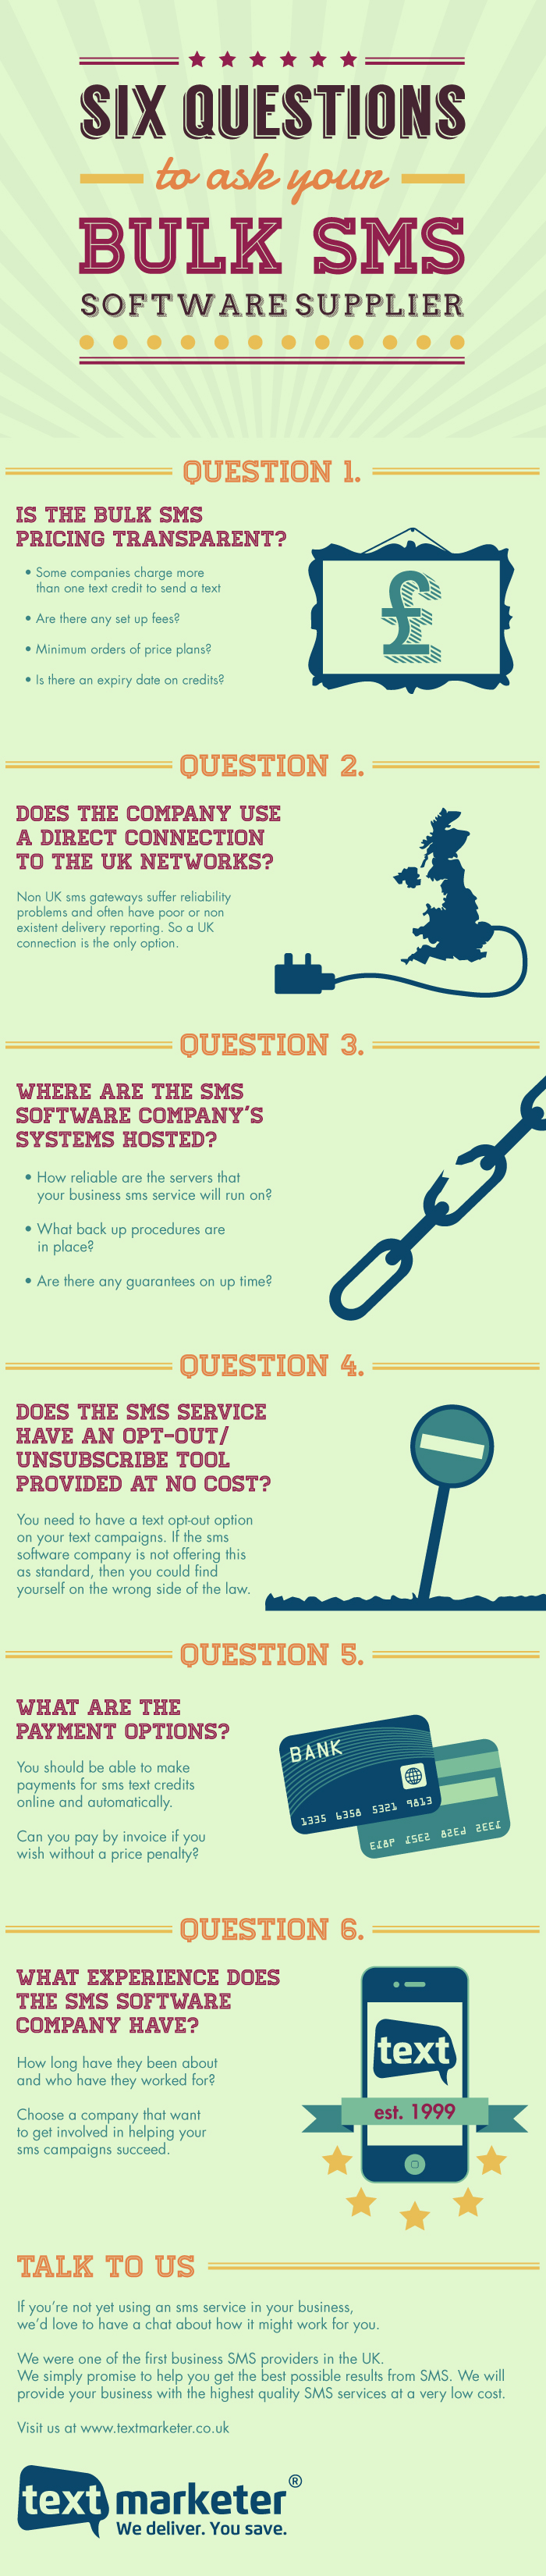 6 Questions To Ask Your SMS Provider